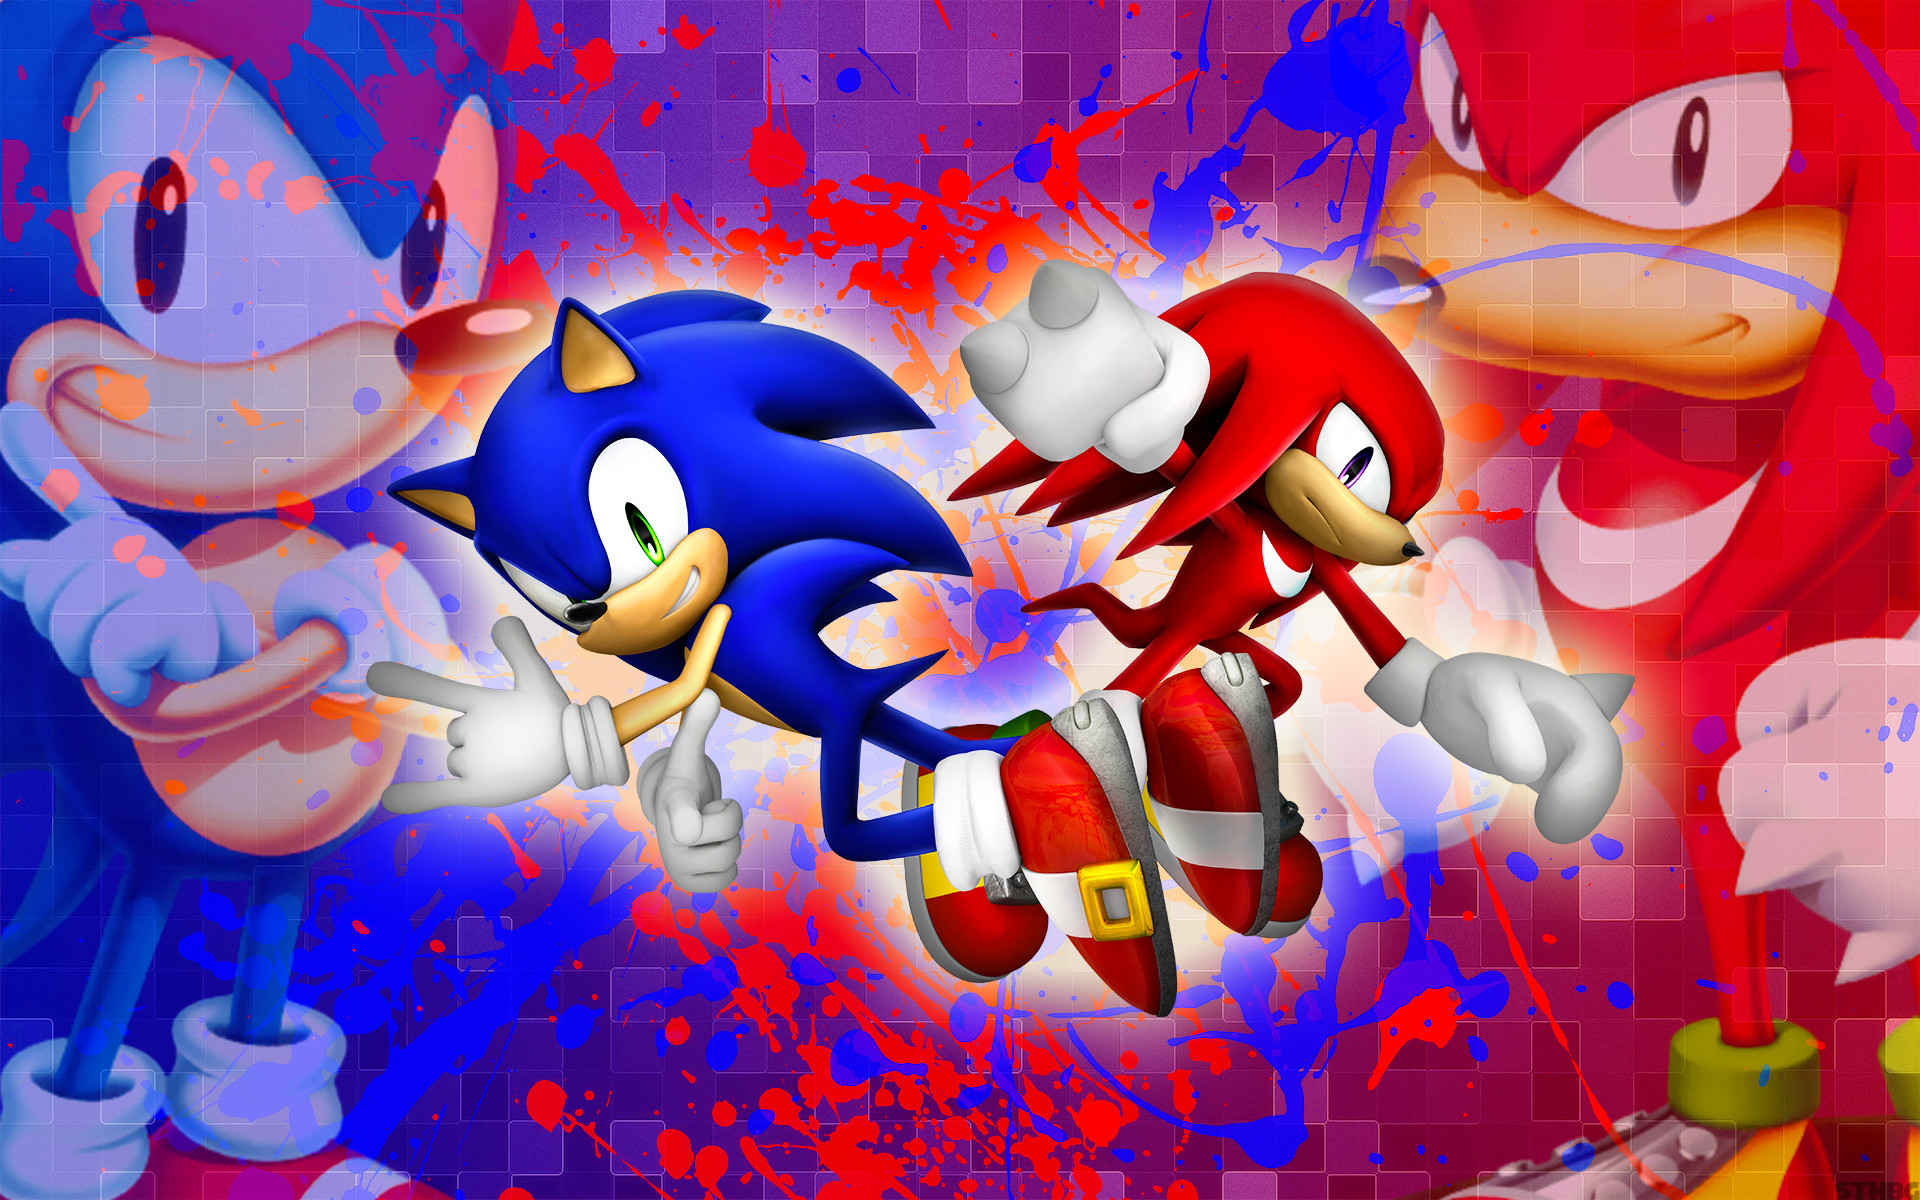 1920x1200 ... SonicTheHedgehogBG Sonic And Knuckles - Wallpaper by SonicTheHedgehogBG